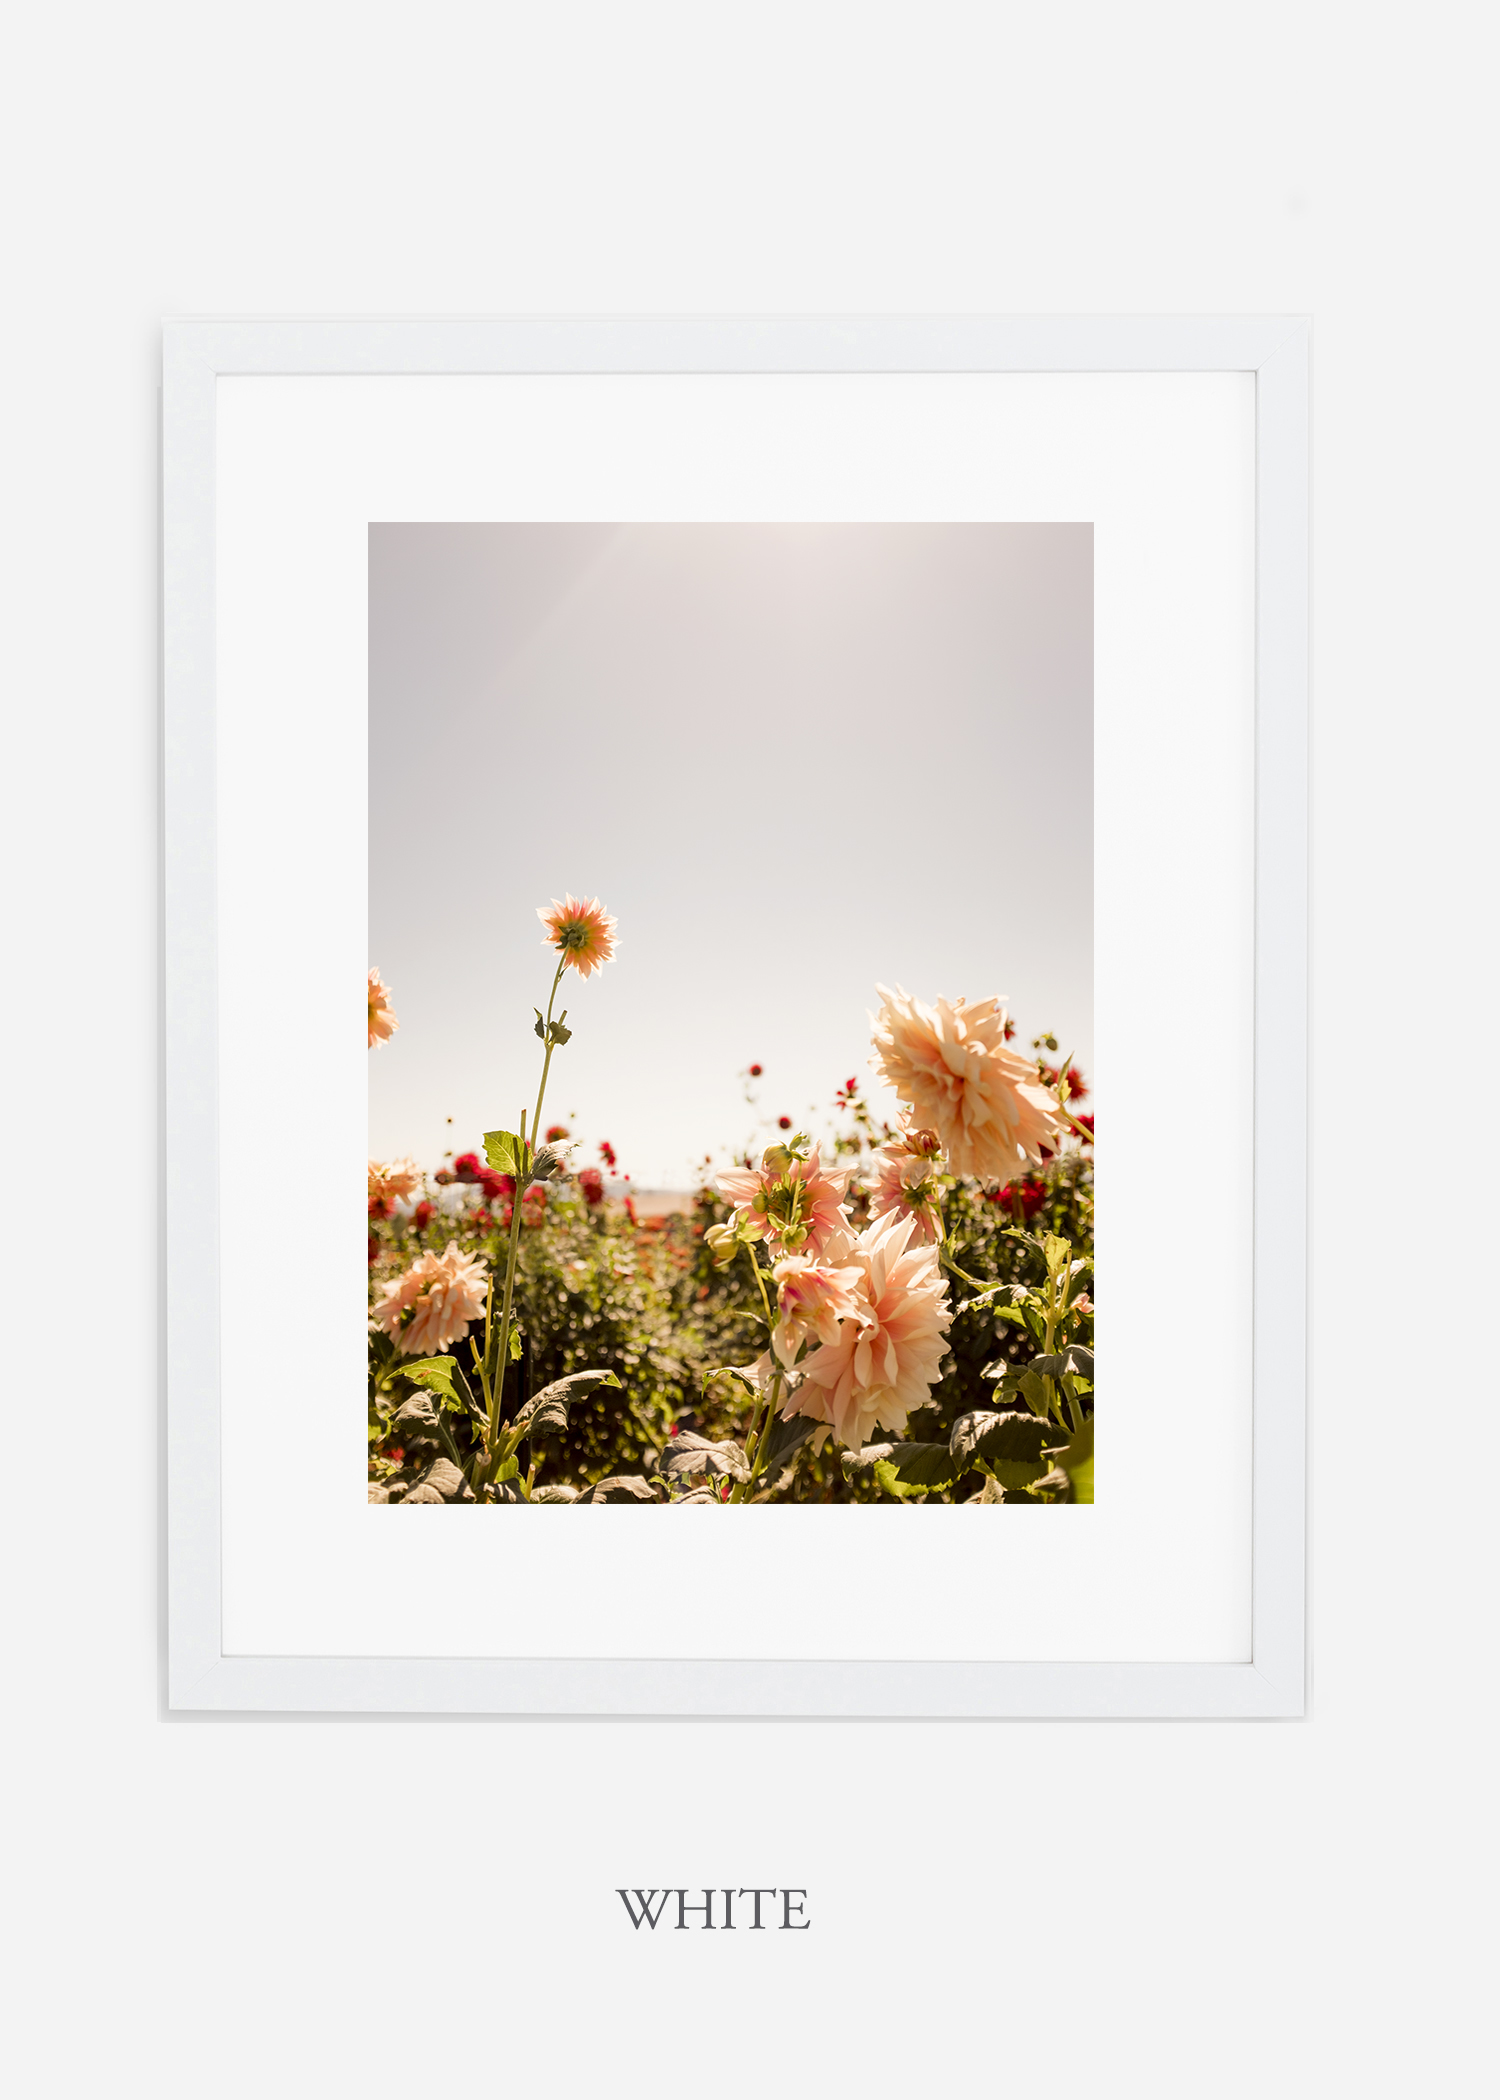 DahliaNo.6-white-frame-mat-interior-design-botanical-print-art-wilder-california-wilder-paper.jpg